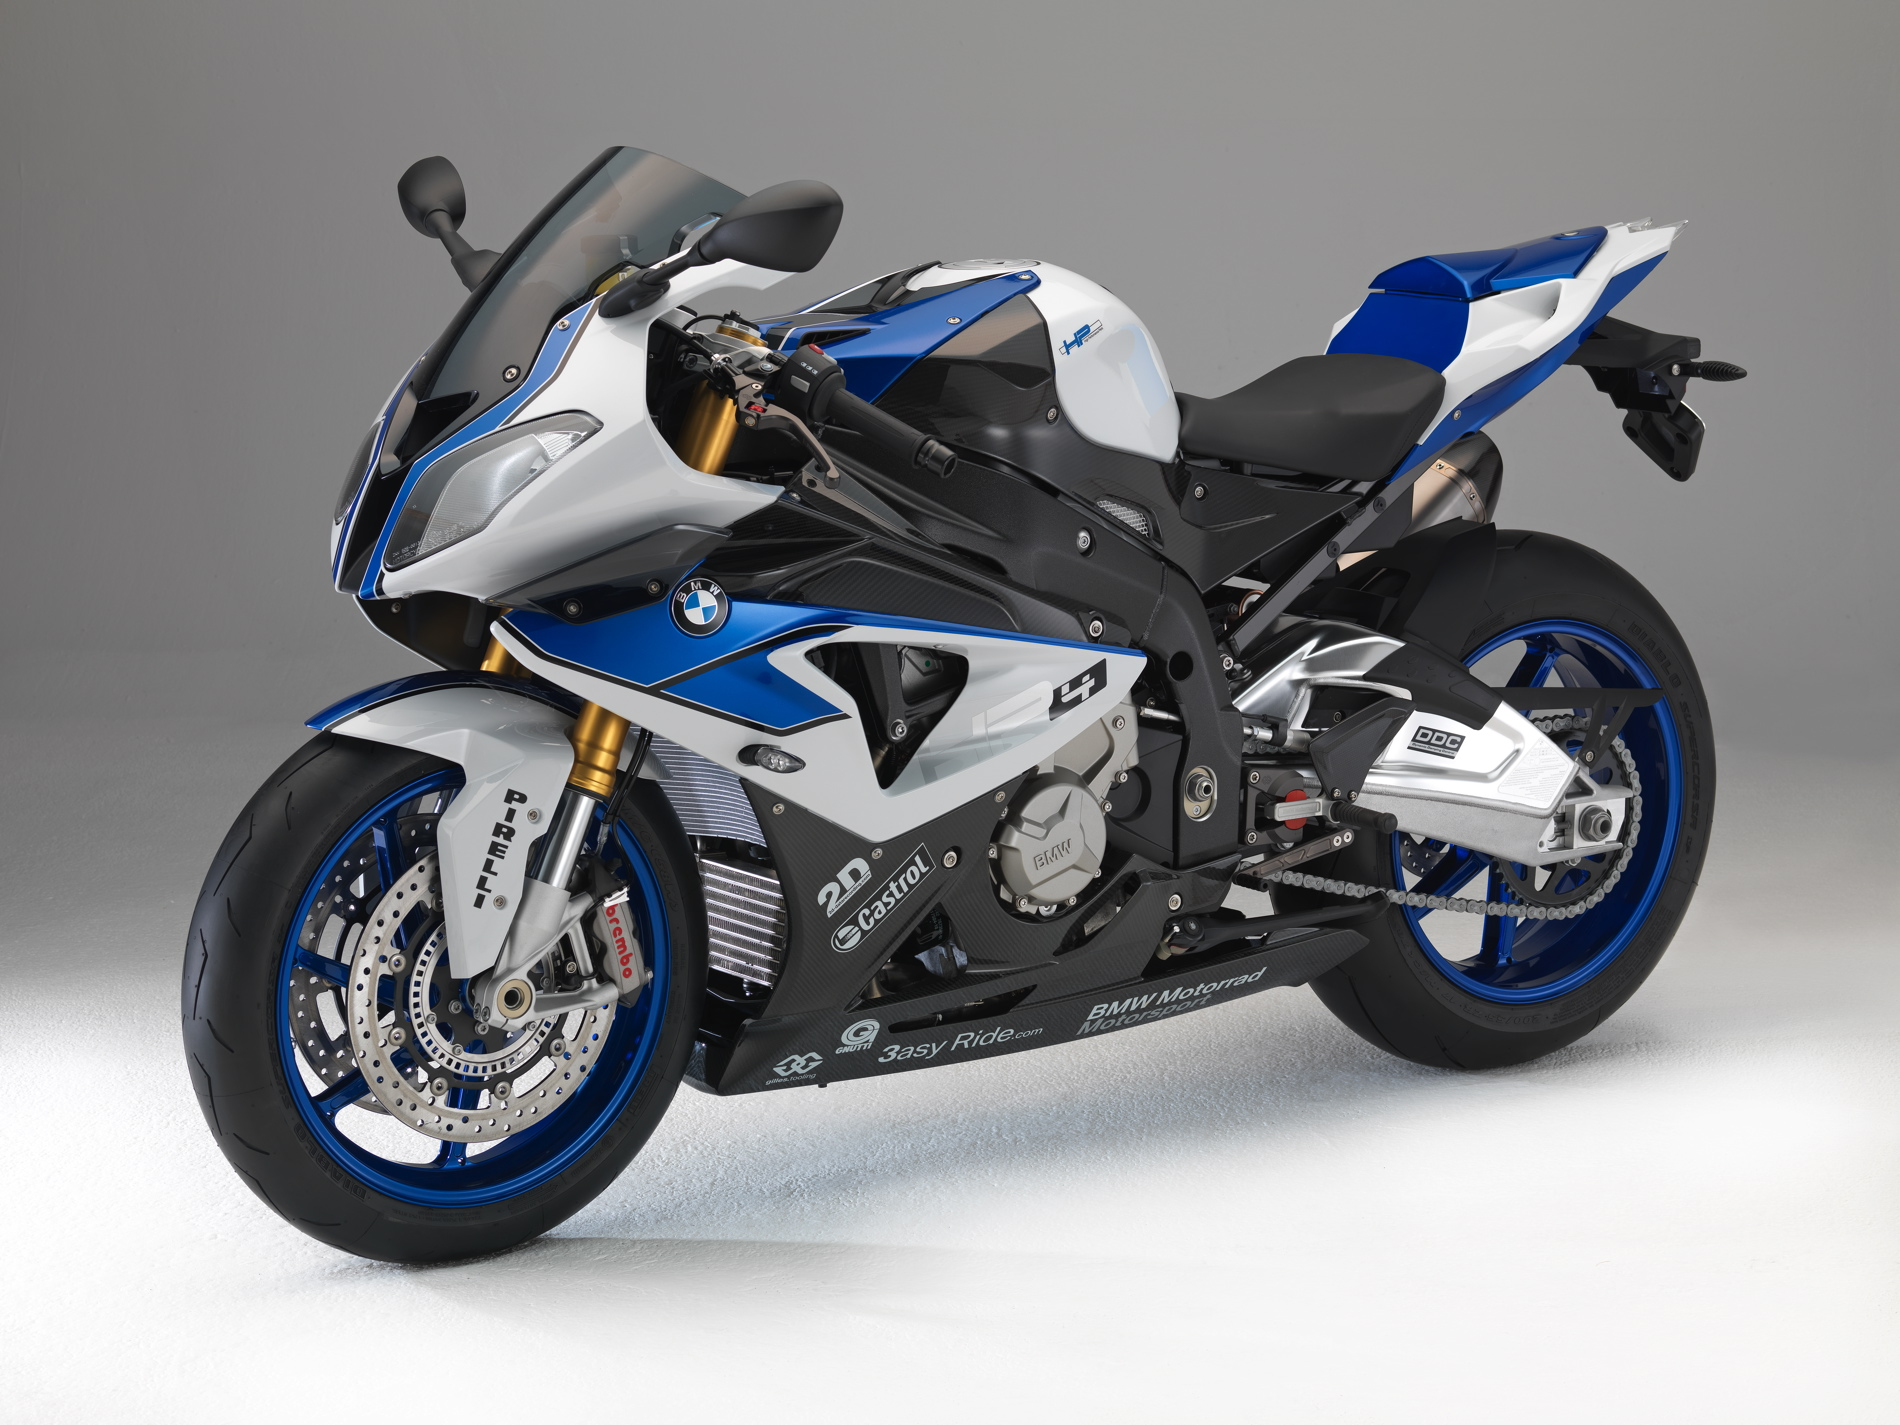 The New Bmw Hp4 Based On The S 1000 Rr